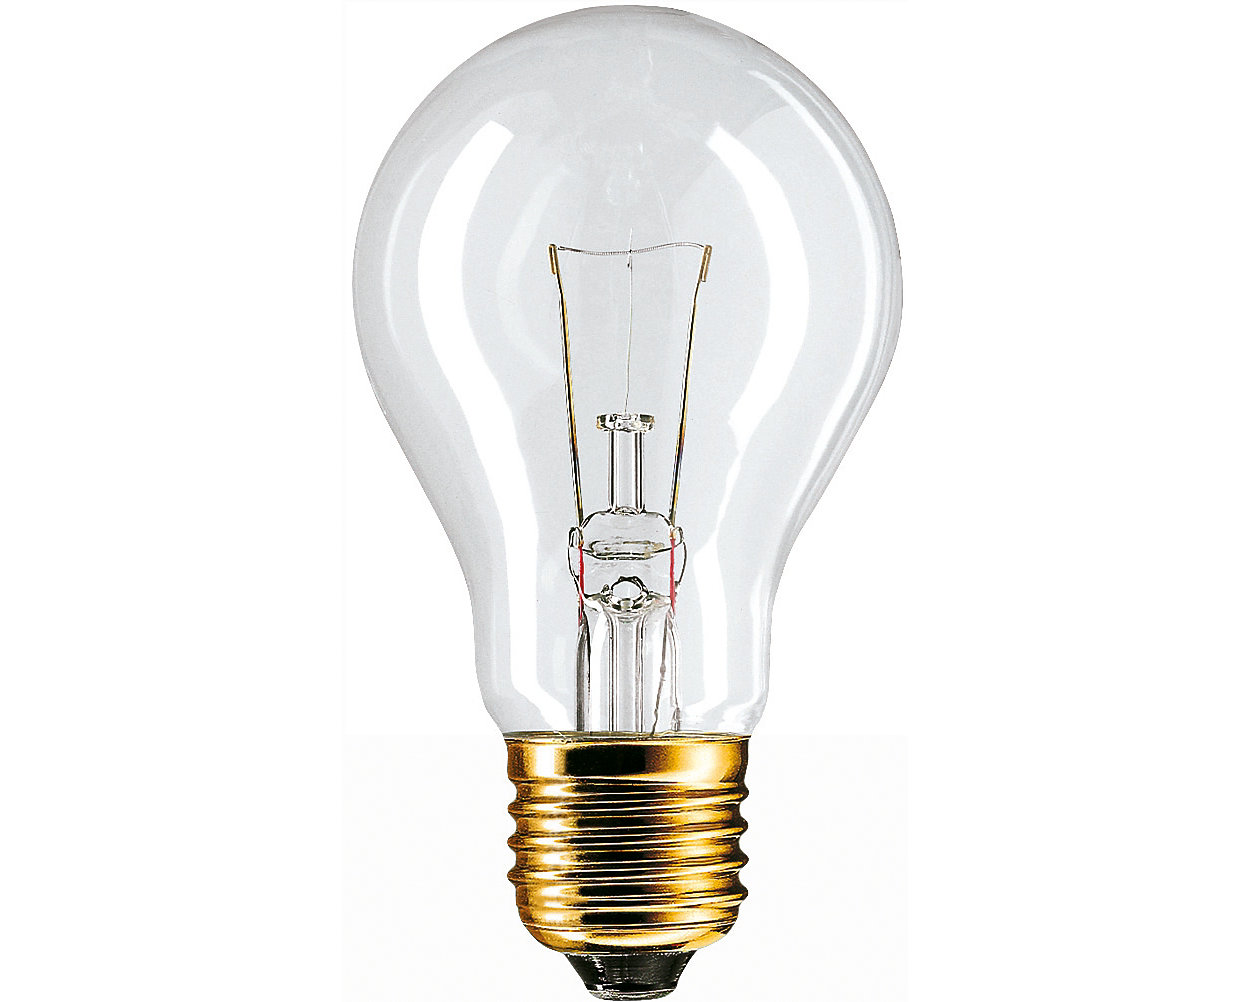 Standard Elv 60w E27 Brc 24v A60 Cl 1ct 20 Standard Extra Low Voltage A60 Philips Lighting